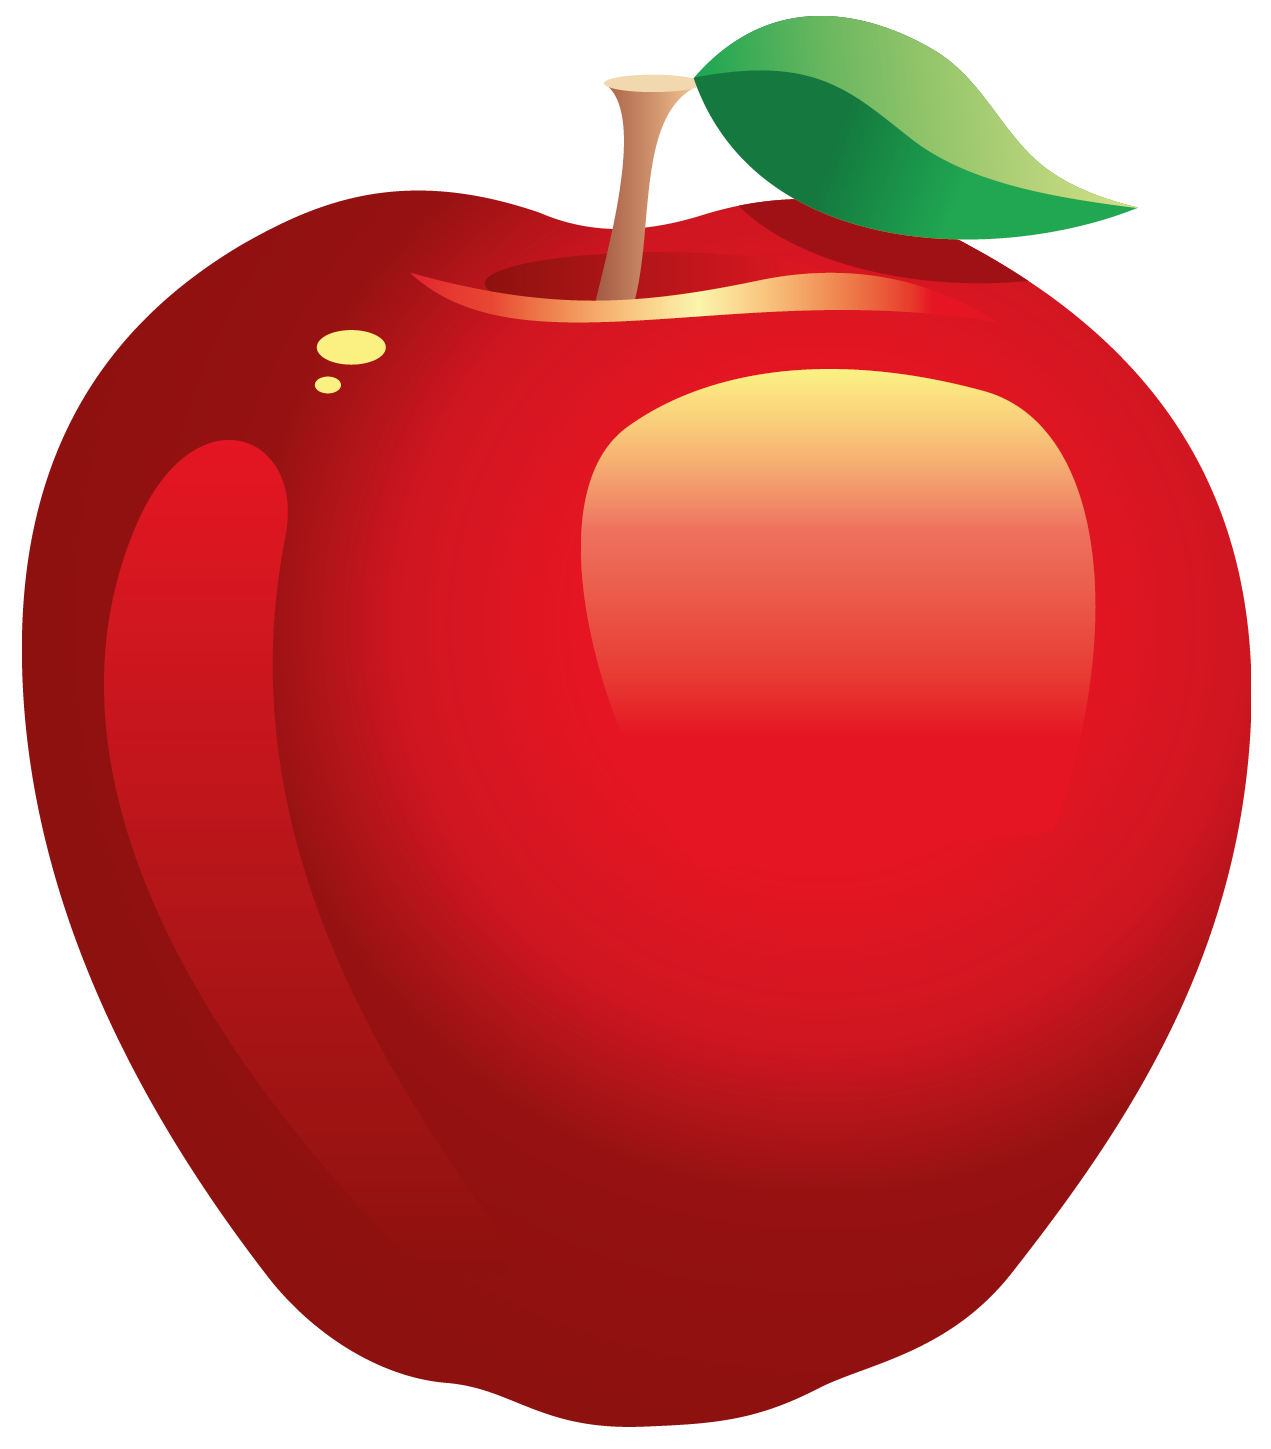 Red apple clipart 2